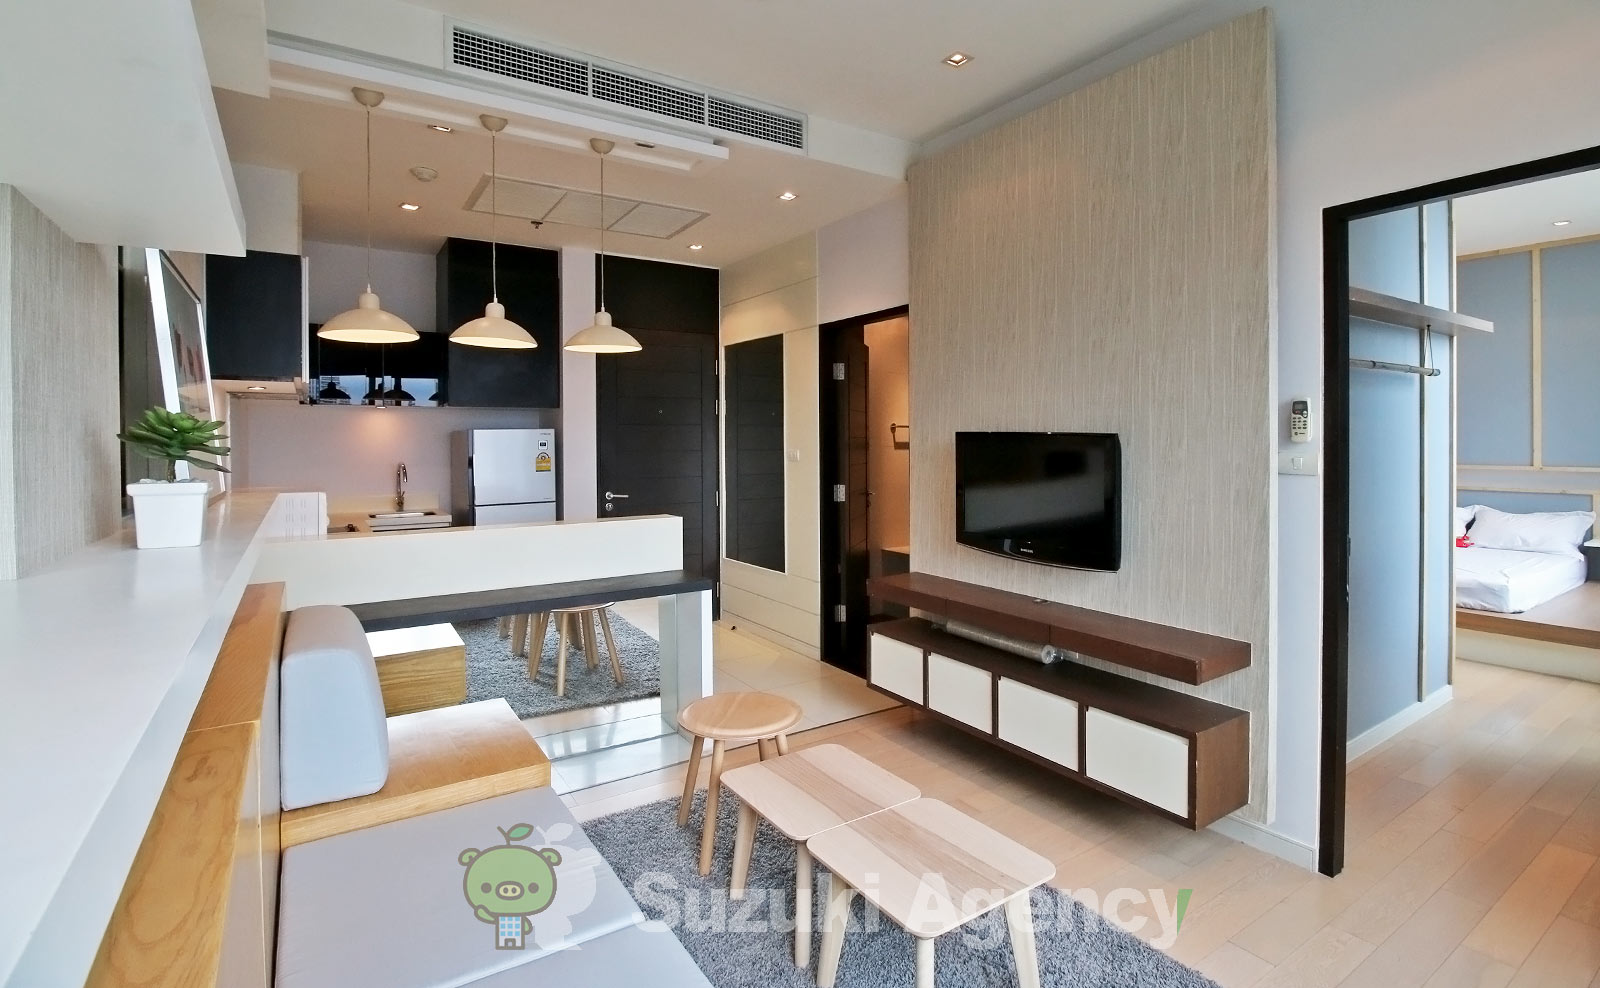 Eight Thonglor Residence:1Bed Room Photos No.3